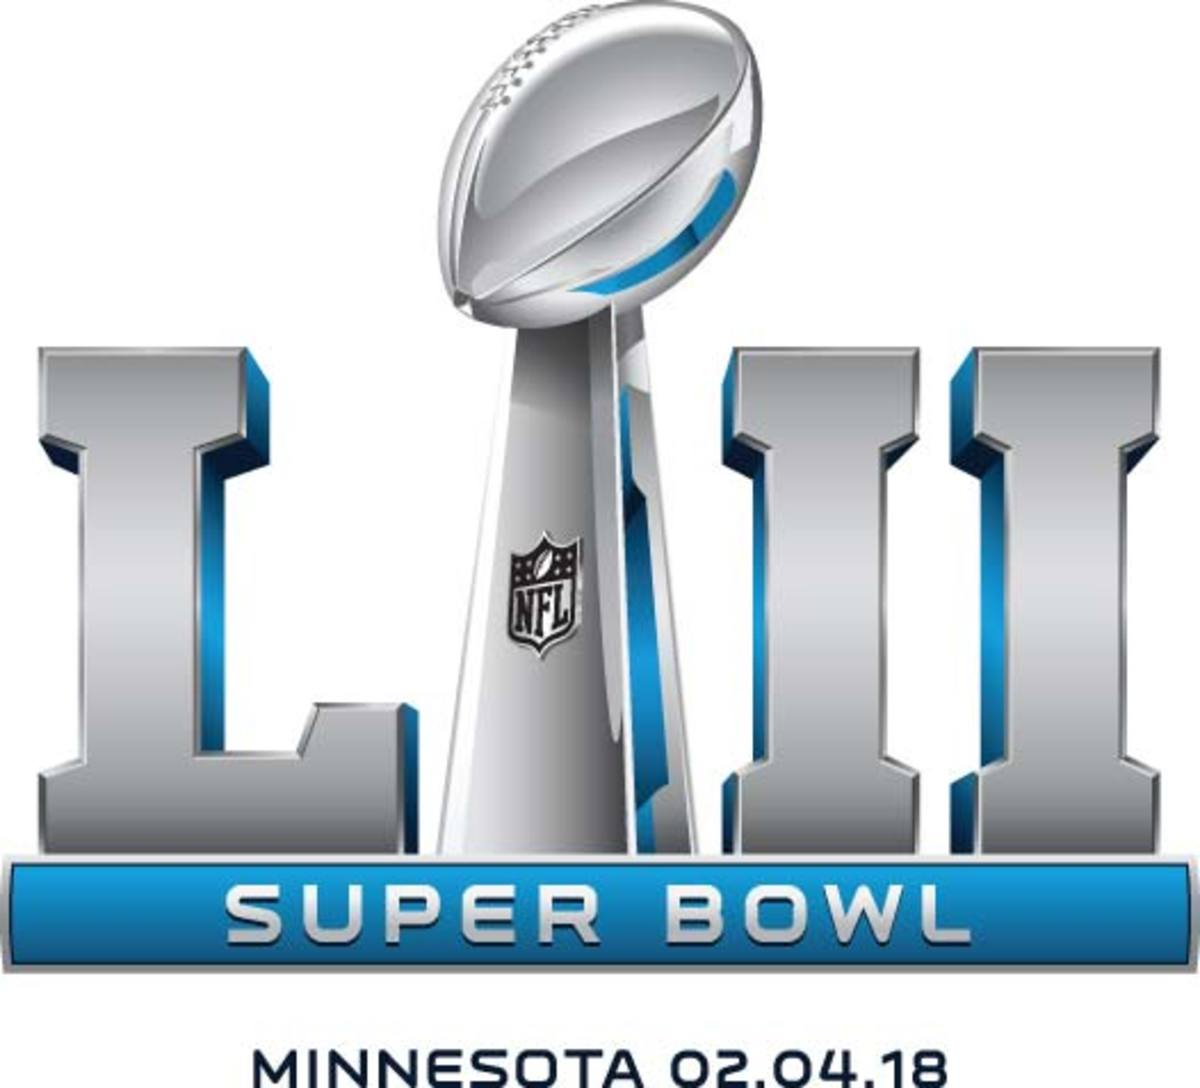 What Channel is the 2018 Super Bowl on?